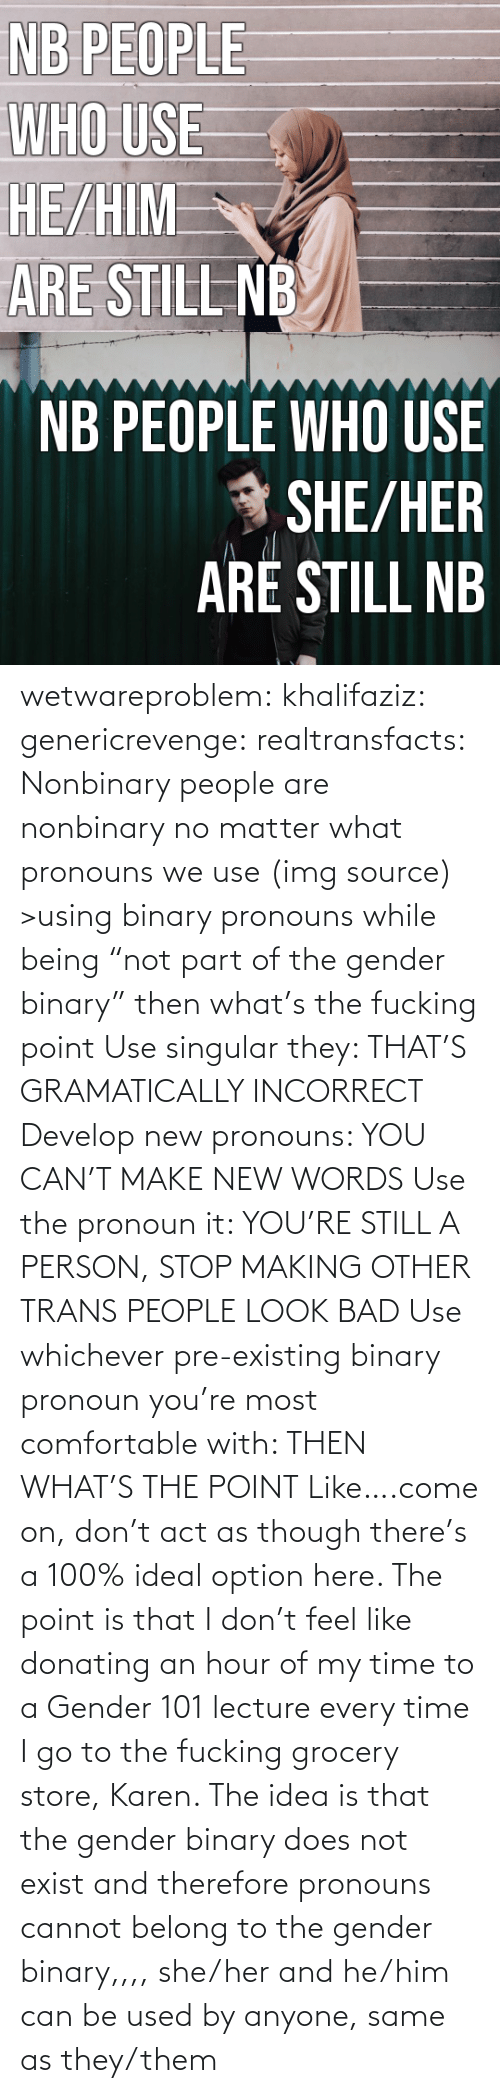 "gender: NB PEOPLE  WHO USE  HE/HIM  ARE STILL NB   NB PEOPLE WHO USE  * SHE/HER  ARÉ STILL NB wetwareproblem: khalifaziz:   genericrevenge:   realtransfacts: Nonbinary people are nonbinary no matter what pronouns we use (img source)   >using binary pronouns while being ""not part of the gender binary"" then what's the fucking point   Use singular they: THAT'S GRAMATICALLY INCORRECT Develop new pronouns: YOU CAN'T MAKE NEW WORDS Use the pronoun it: YOU'RE STILL A PERSON, STOP MAKING OTHER TRANS PEOPLE LOOK BAD Use whichever pre-existing binary pronoun you're most comfortable with: THEN WHAT'S THE POINT Like….come on, don't act as though there's a 100% ideal option here.    The point is that I don't feel like donating an hour of my time to a Gender 101 lecture every time I go to the fucking grocery store, Karen.     The idea is that the gender binary does not exist and therefore pronouns cannot belong to the gender binary,,,, she/her and he/him can be used by anyone, same as they/them"